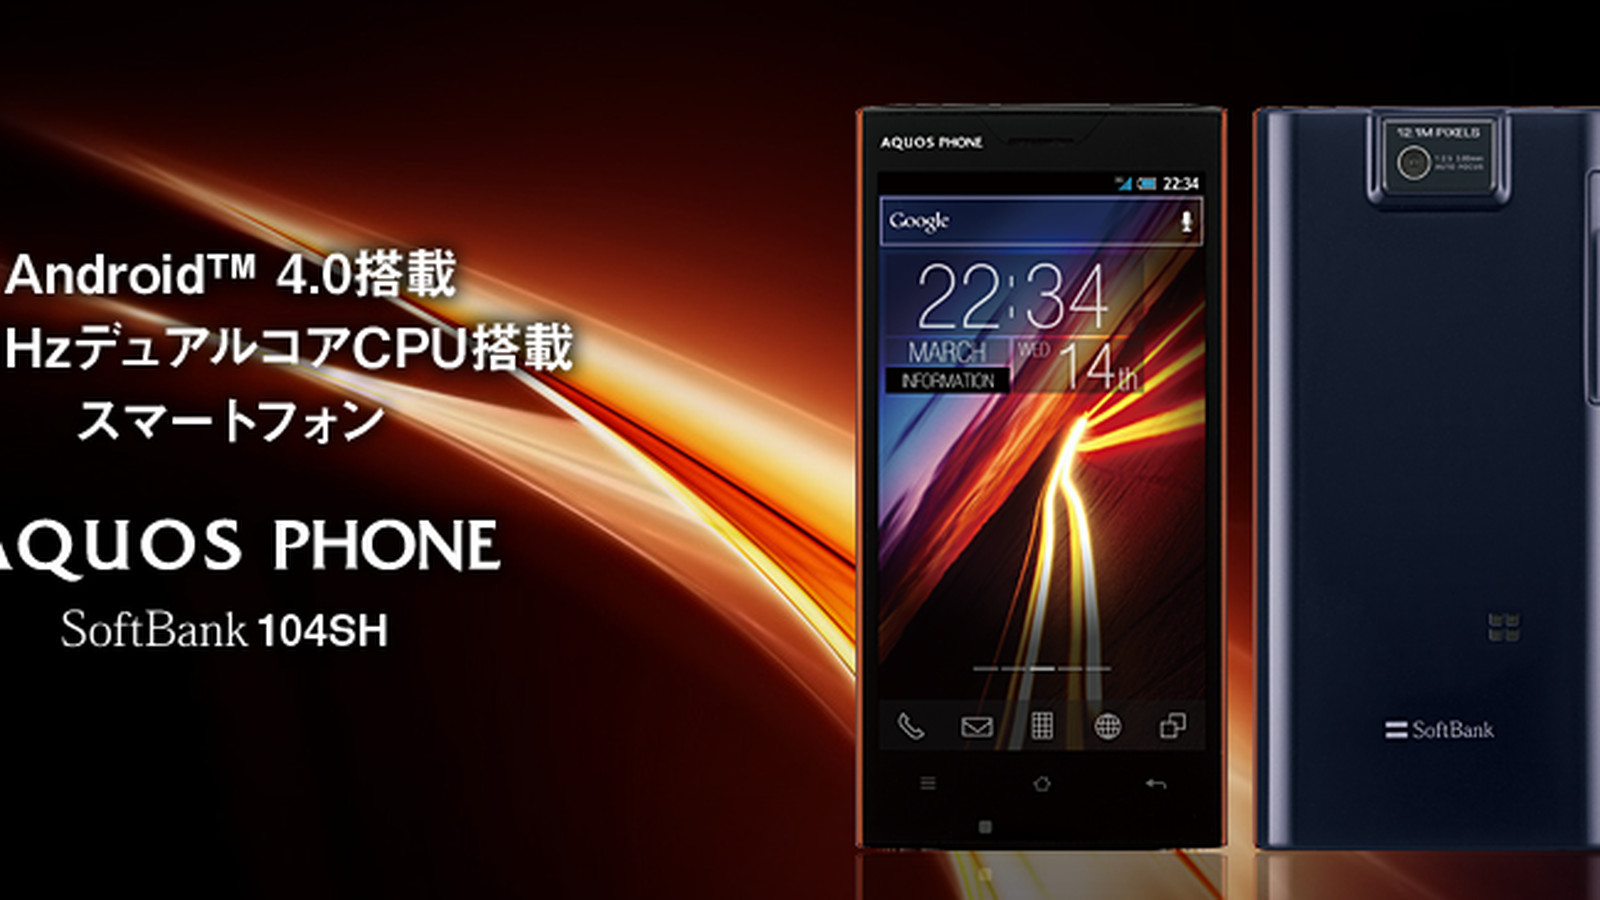 Sharp Aquos Phone 104SH launching with ICS this month, upgrades for